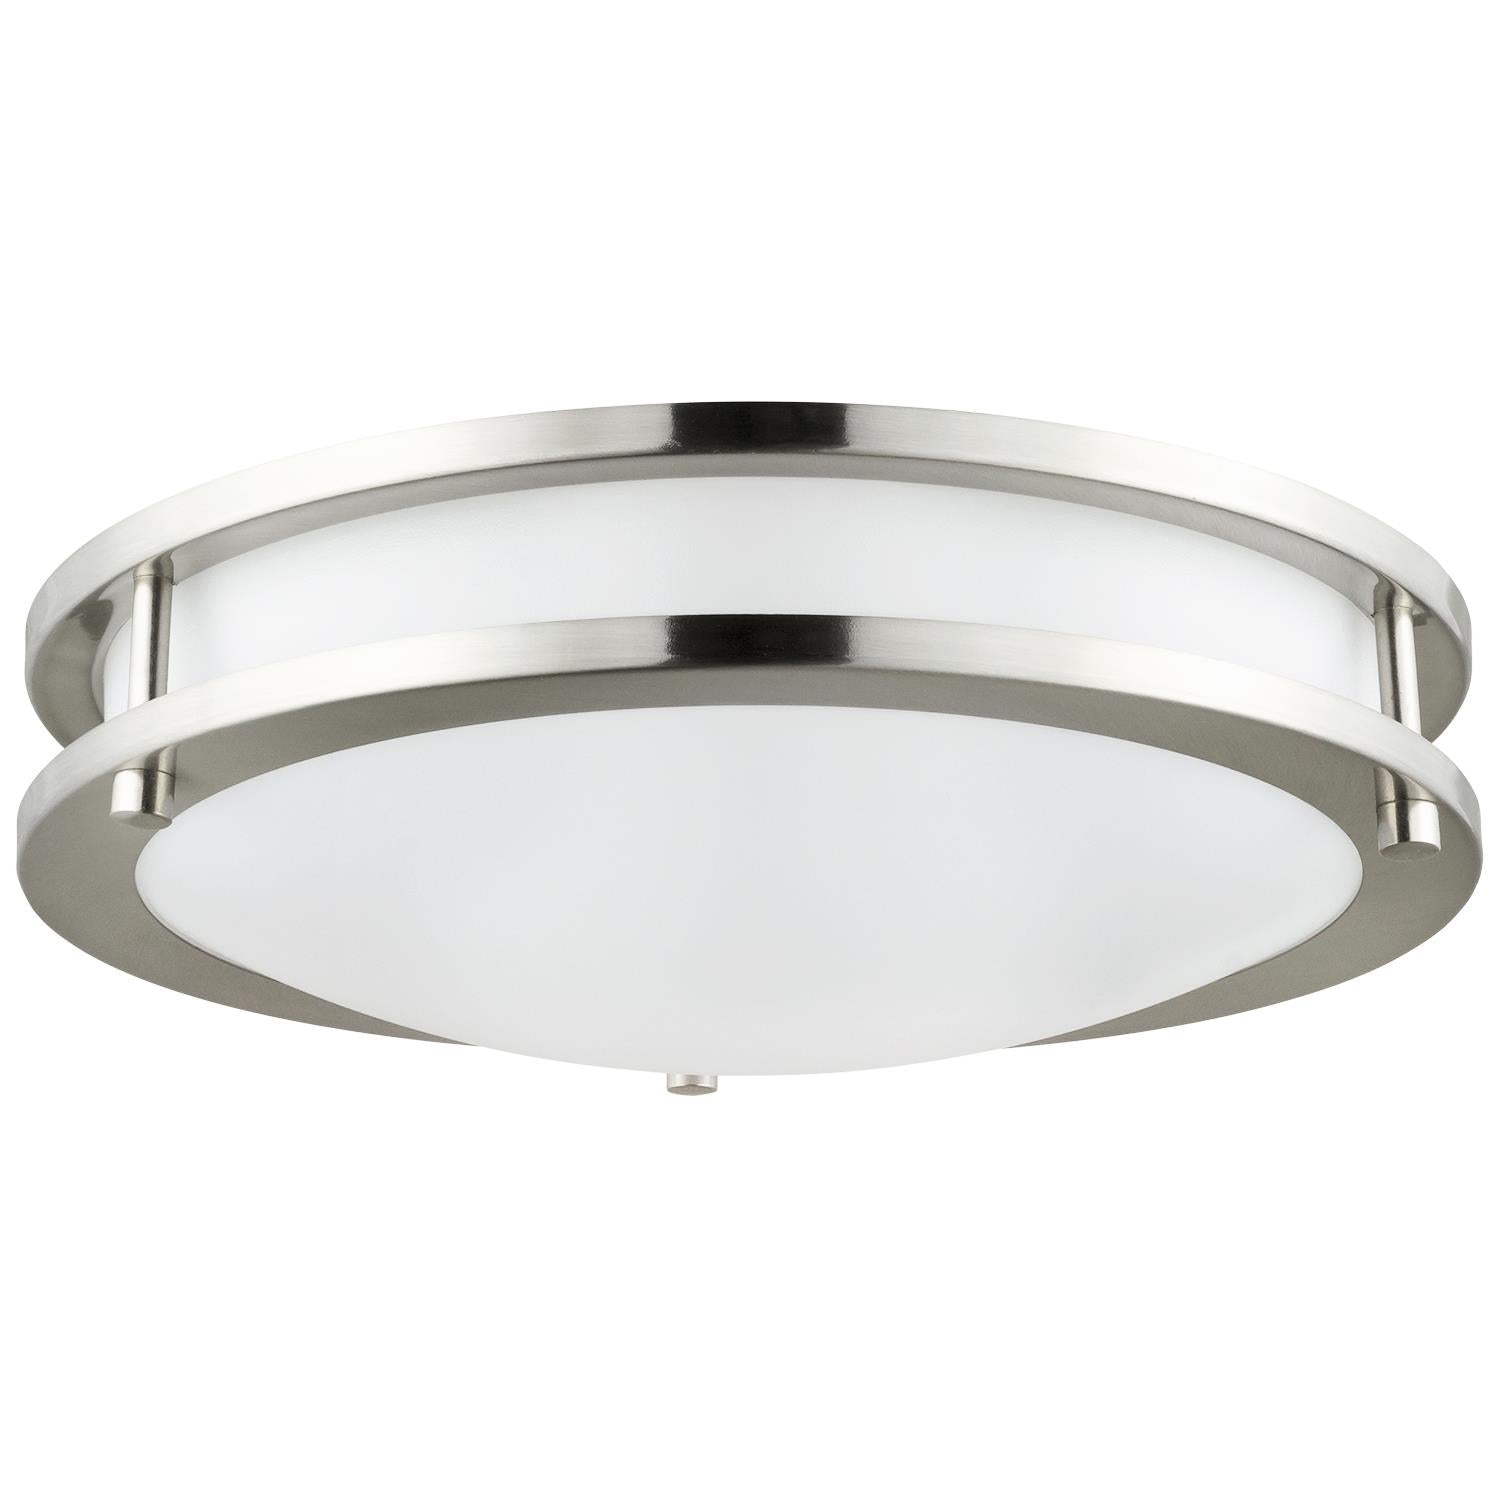 SUNLITE 28w Brushed Nickel Ceiling Light Fixture in Cool White 4000K